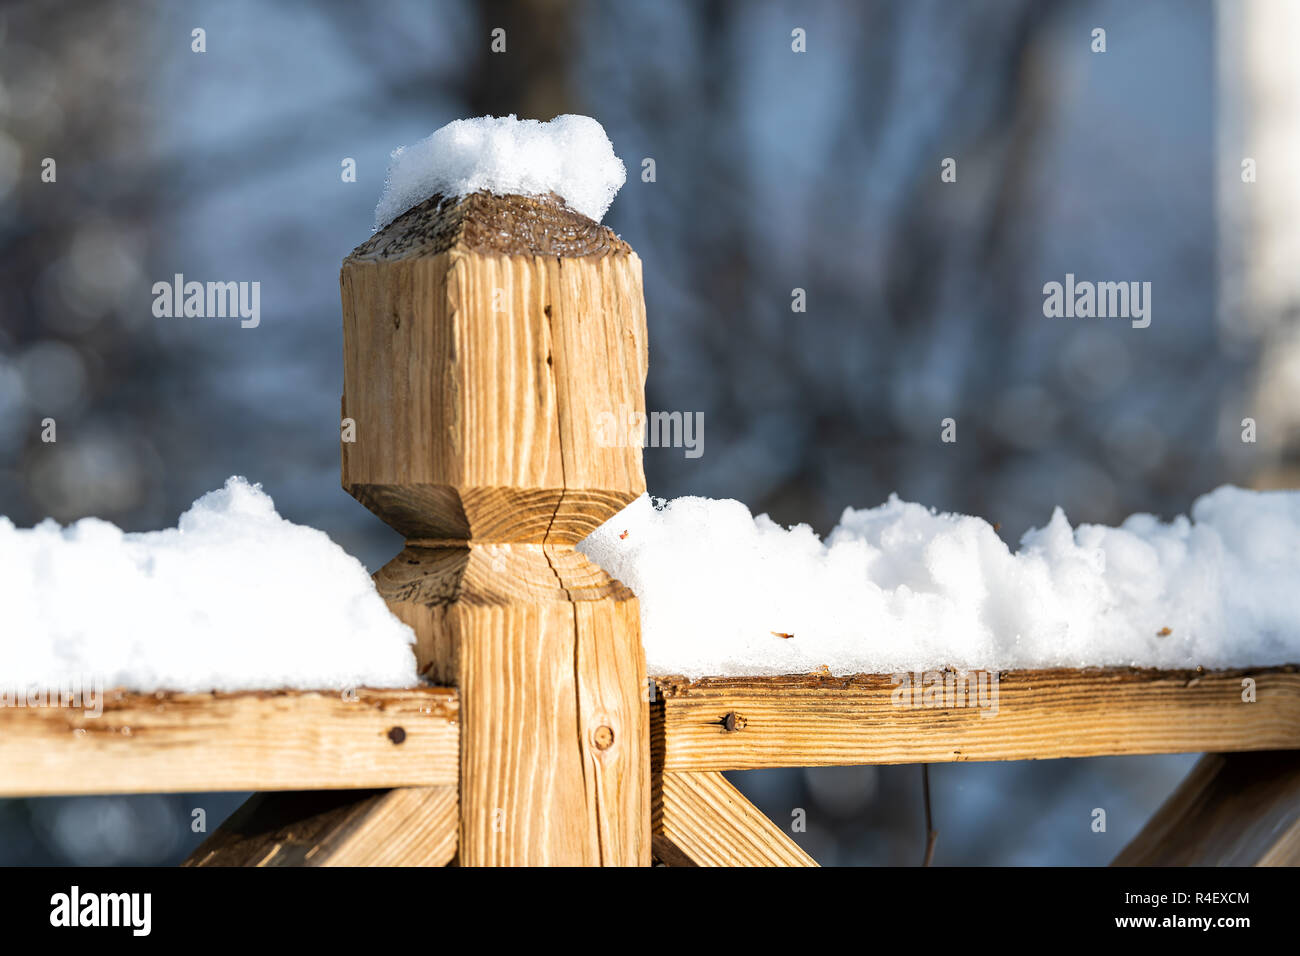 Closeup of wooden deck fence railing, pole, post covered, in piled, pile of snow after heavy snowing snowstorm, storm at house, home, residential neig - Stock Image